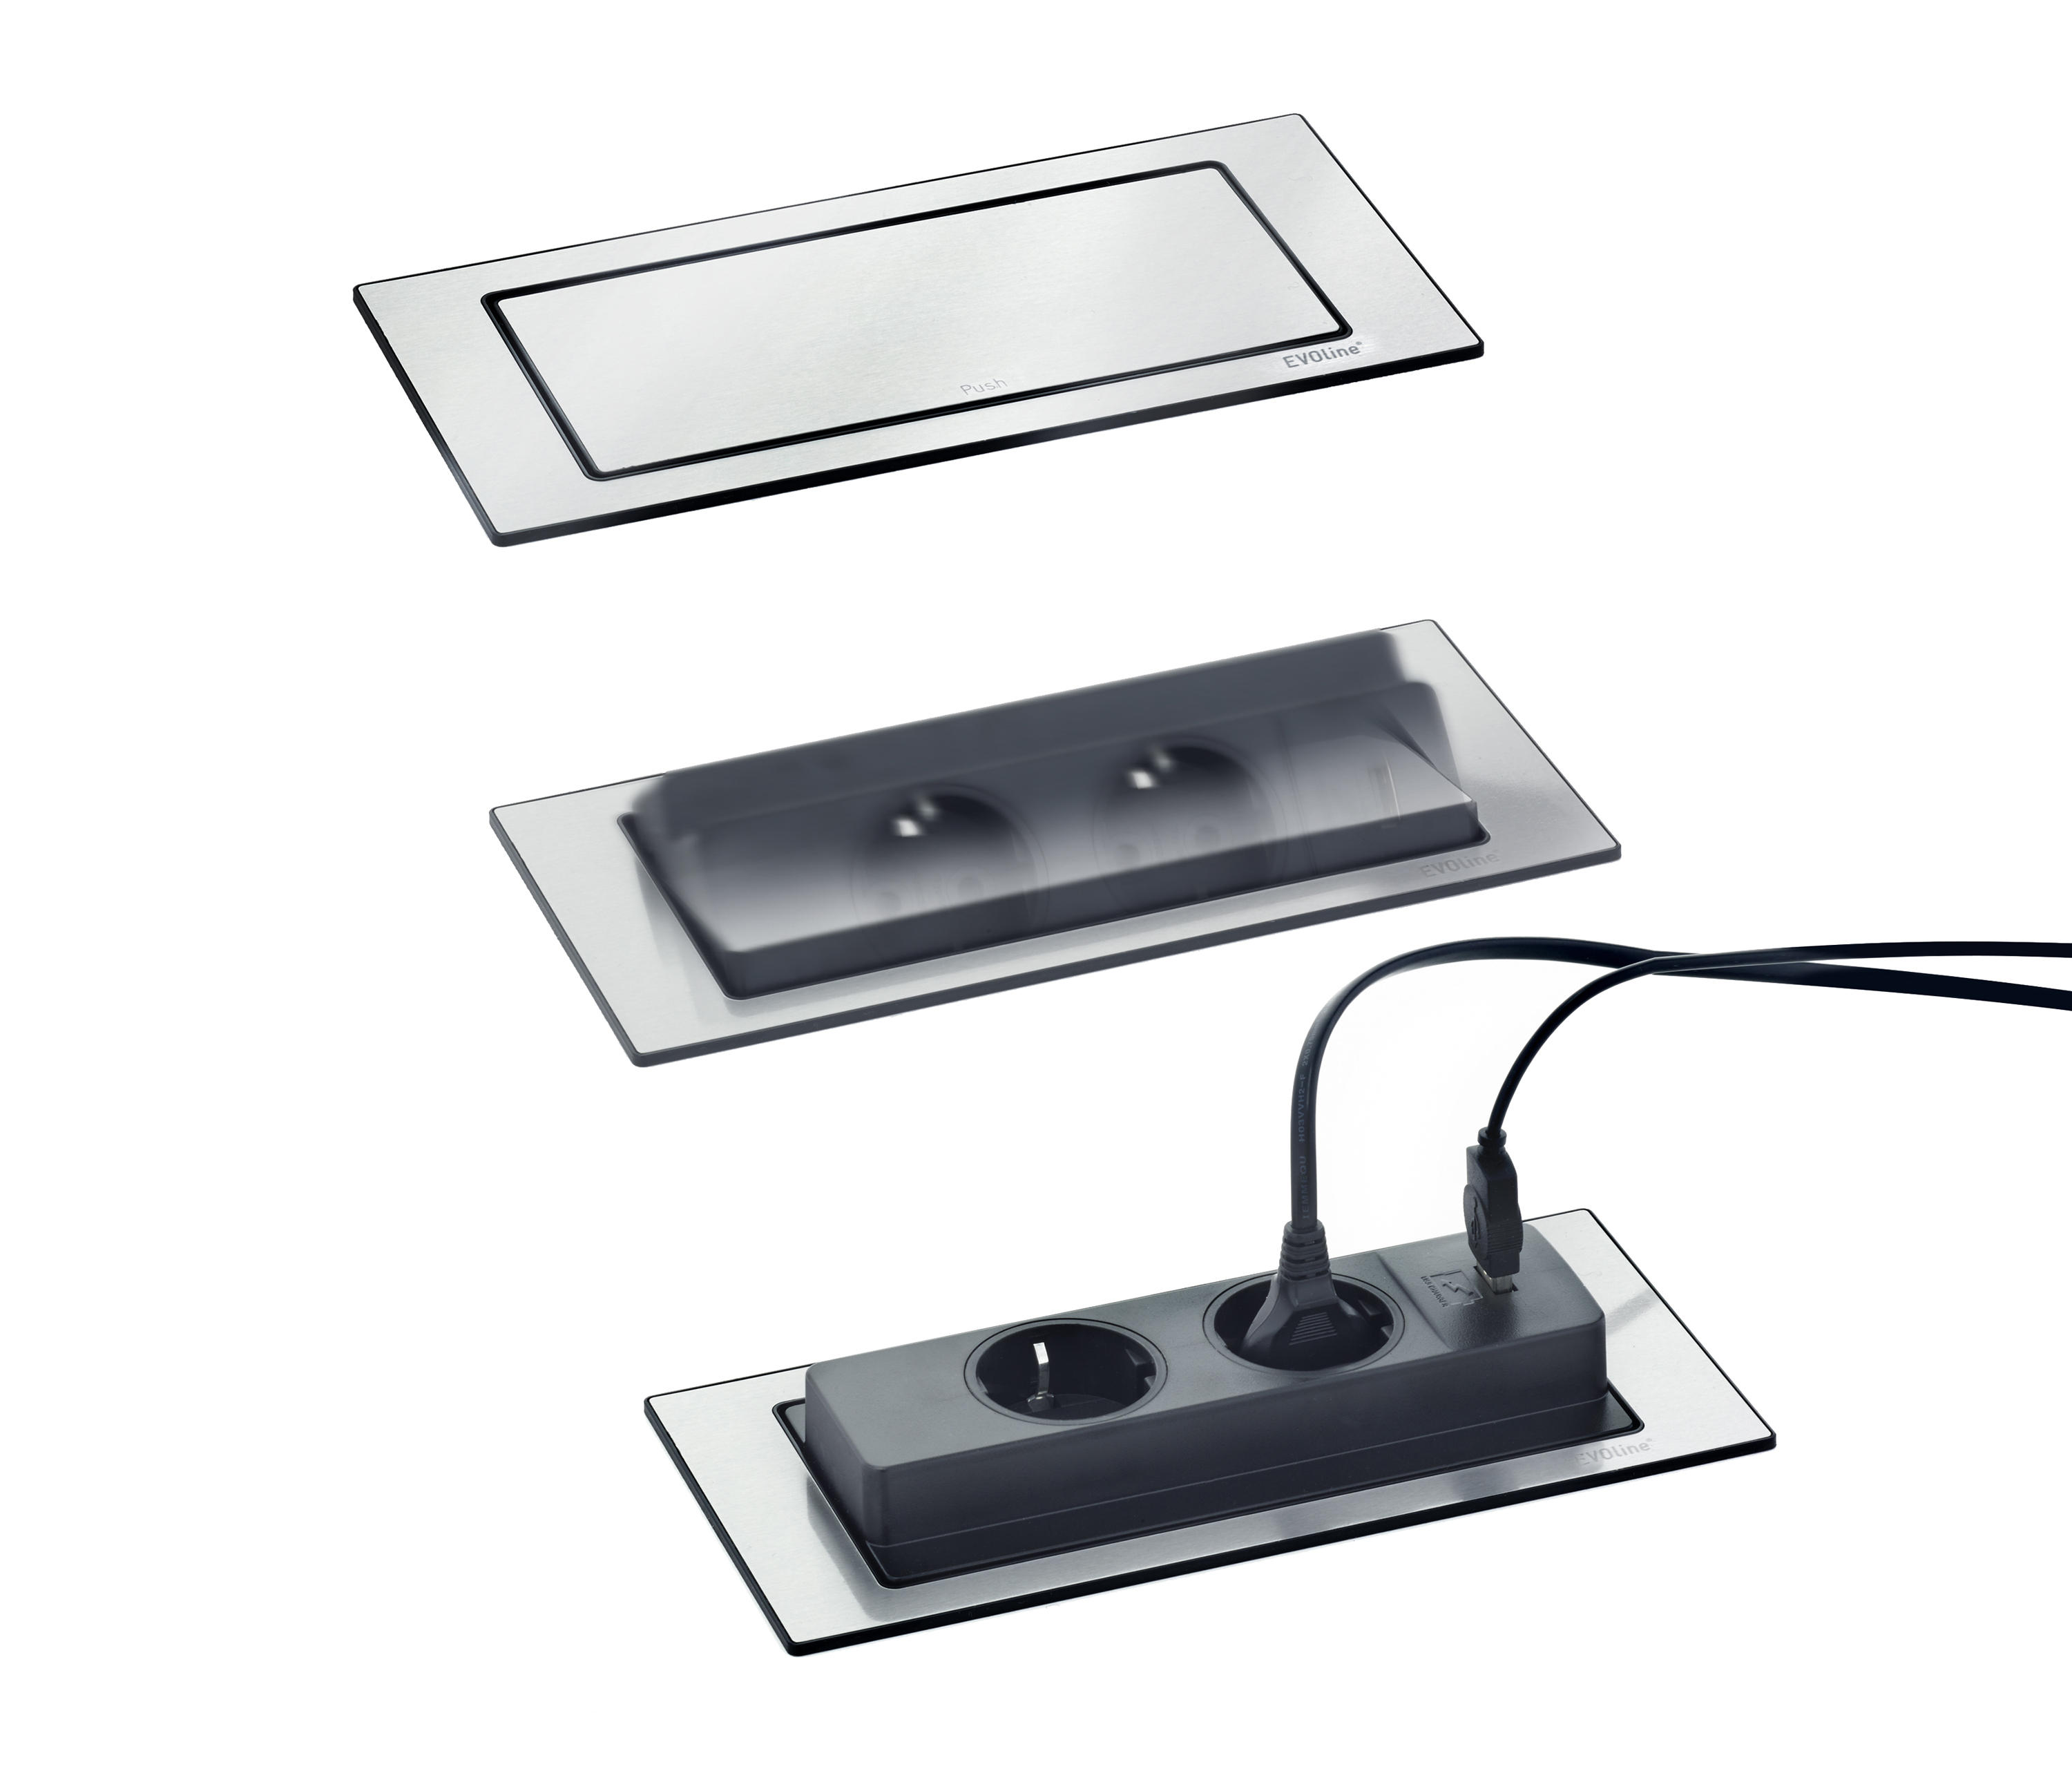 Popup Stopcontact Keuken Backflip Schuko Sockets From Evoline Architonic